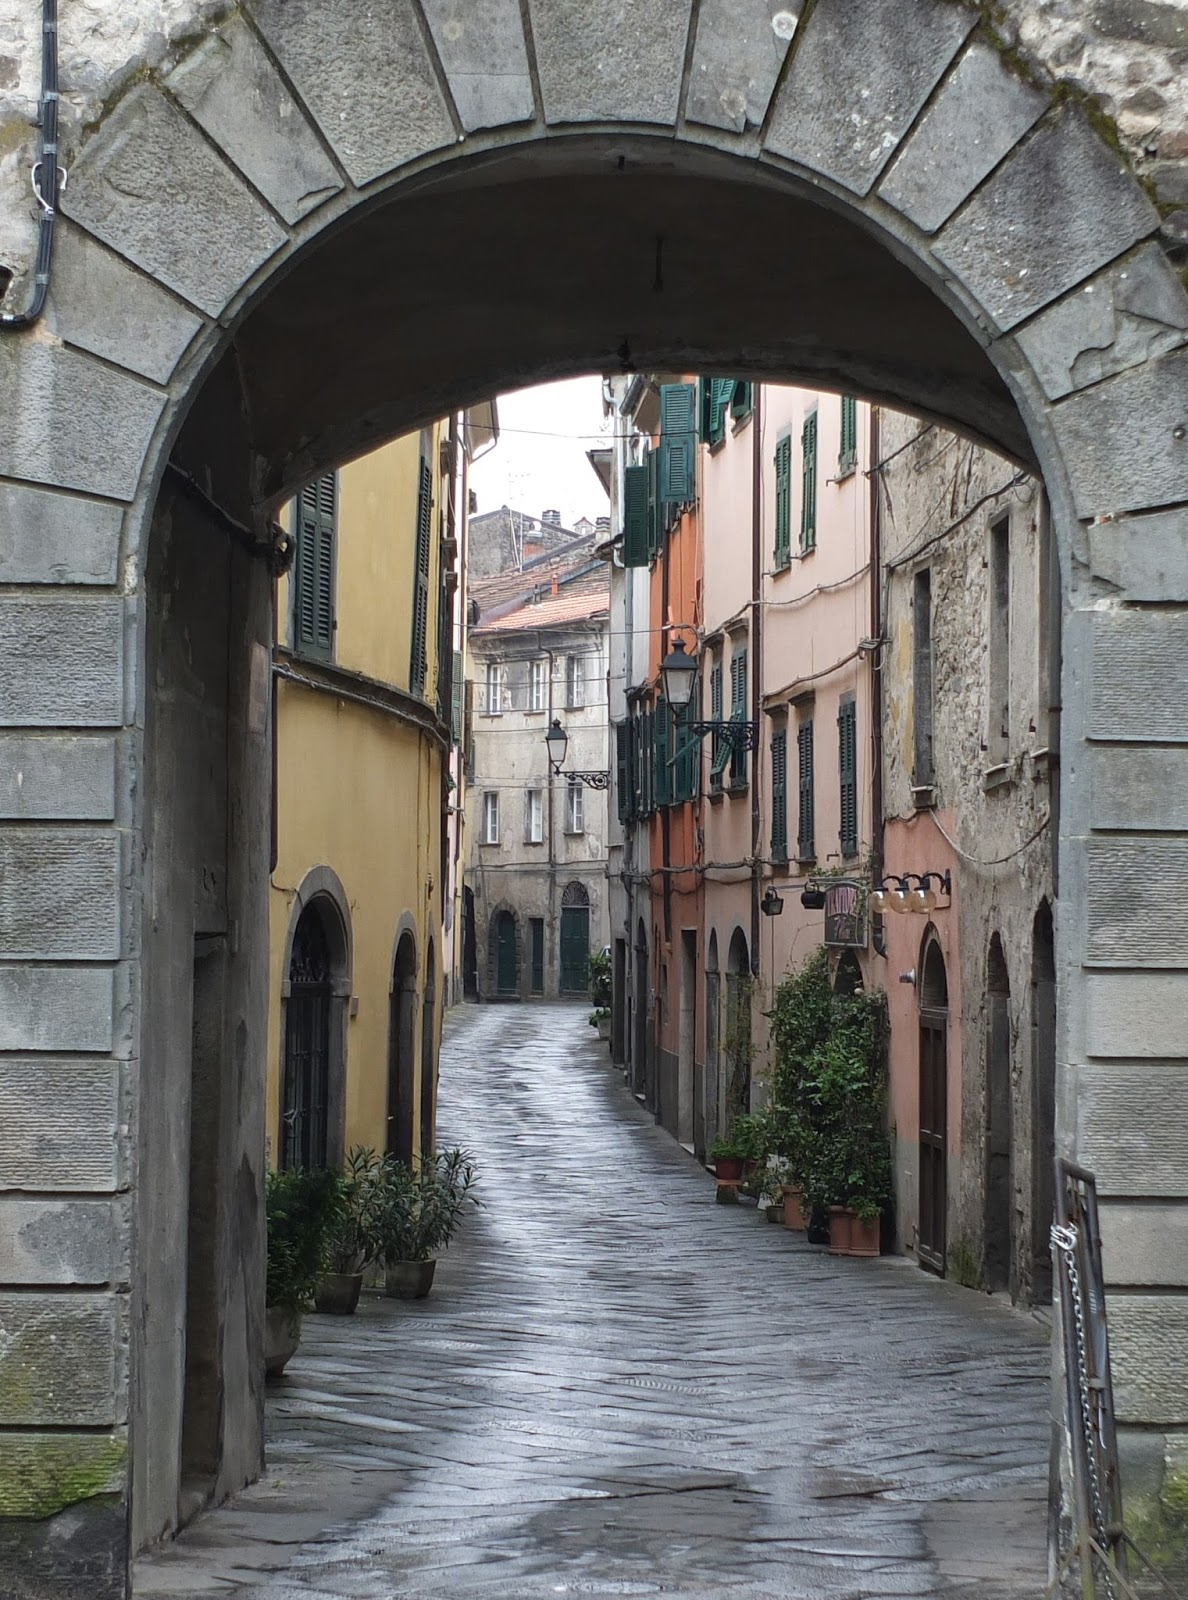 Porta Parma Pontremoli and Via Garibaldi